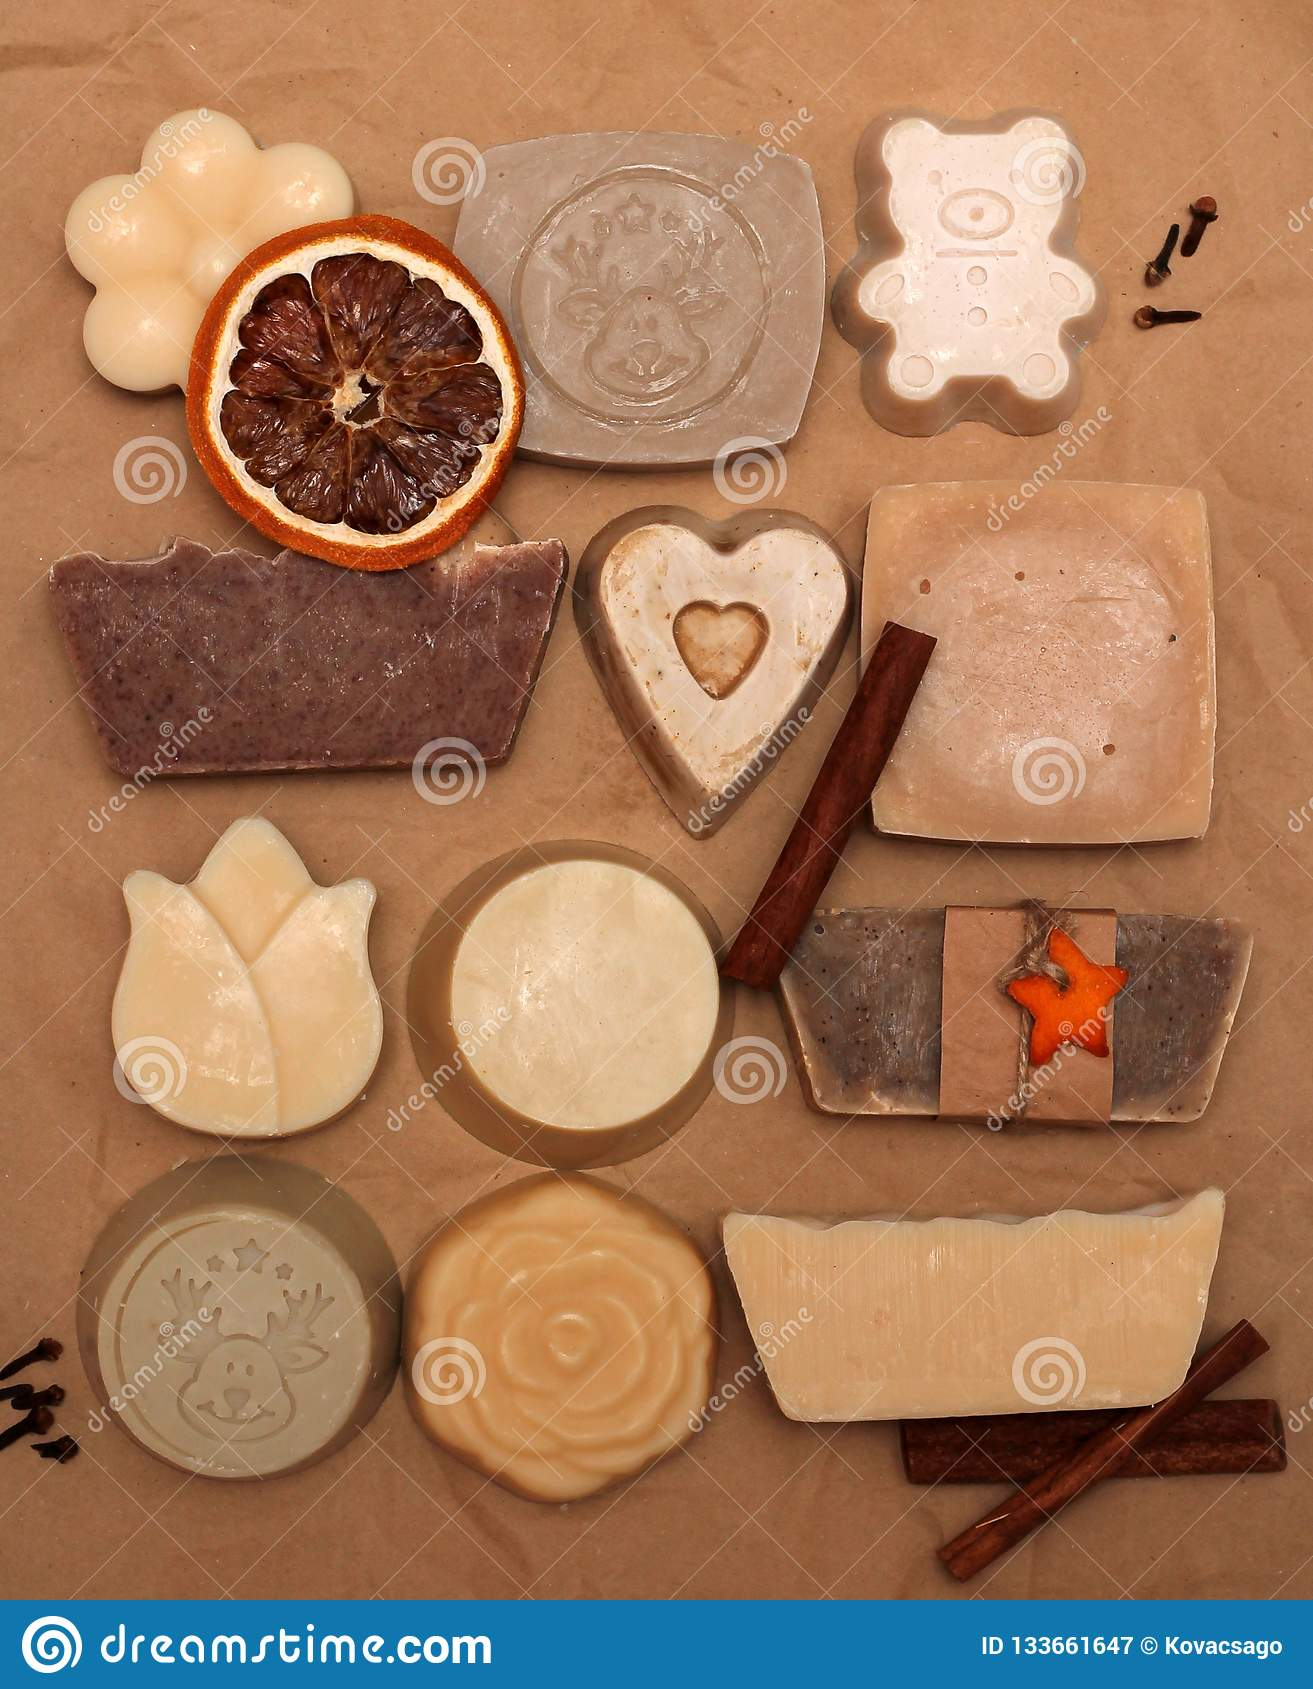 Handmade soap made with love